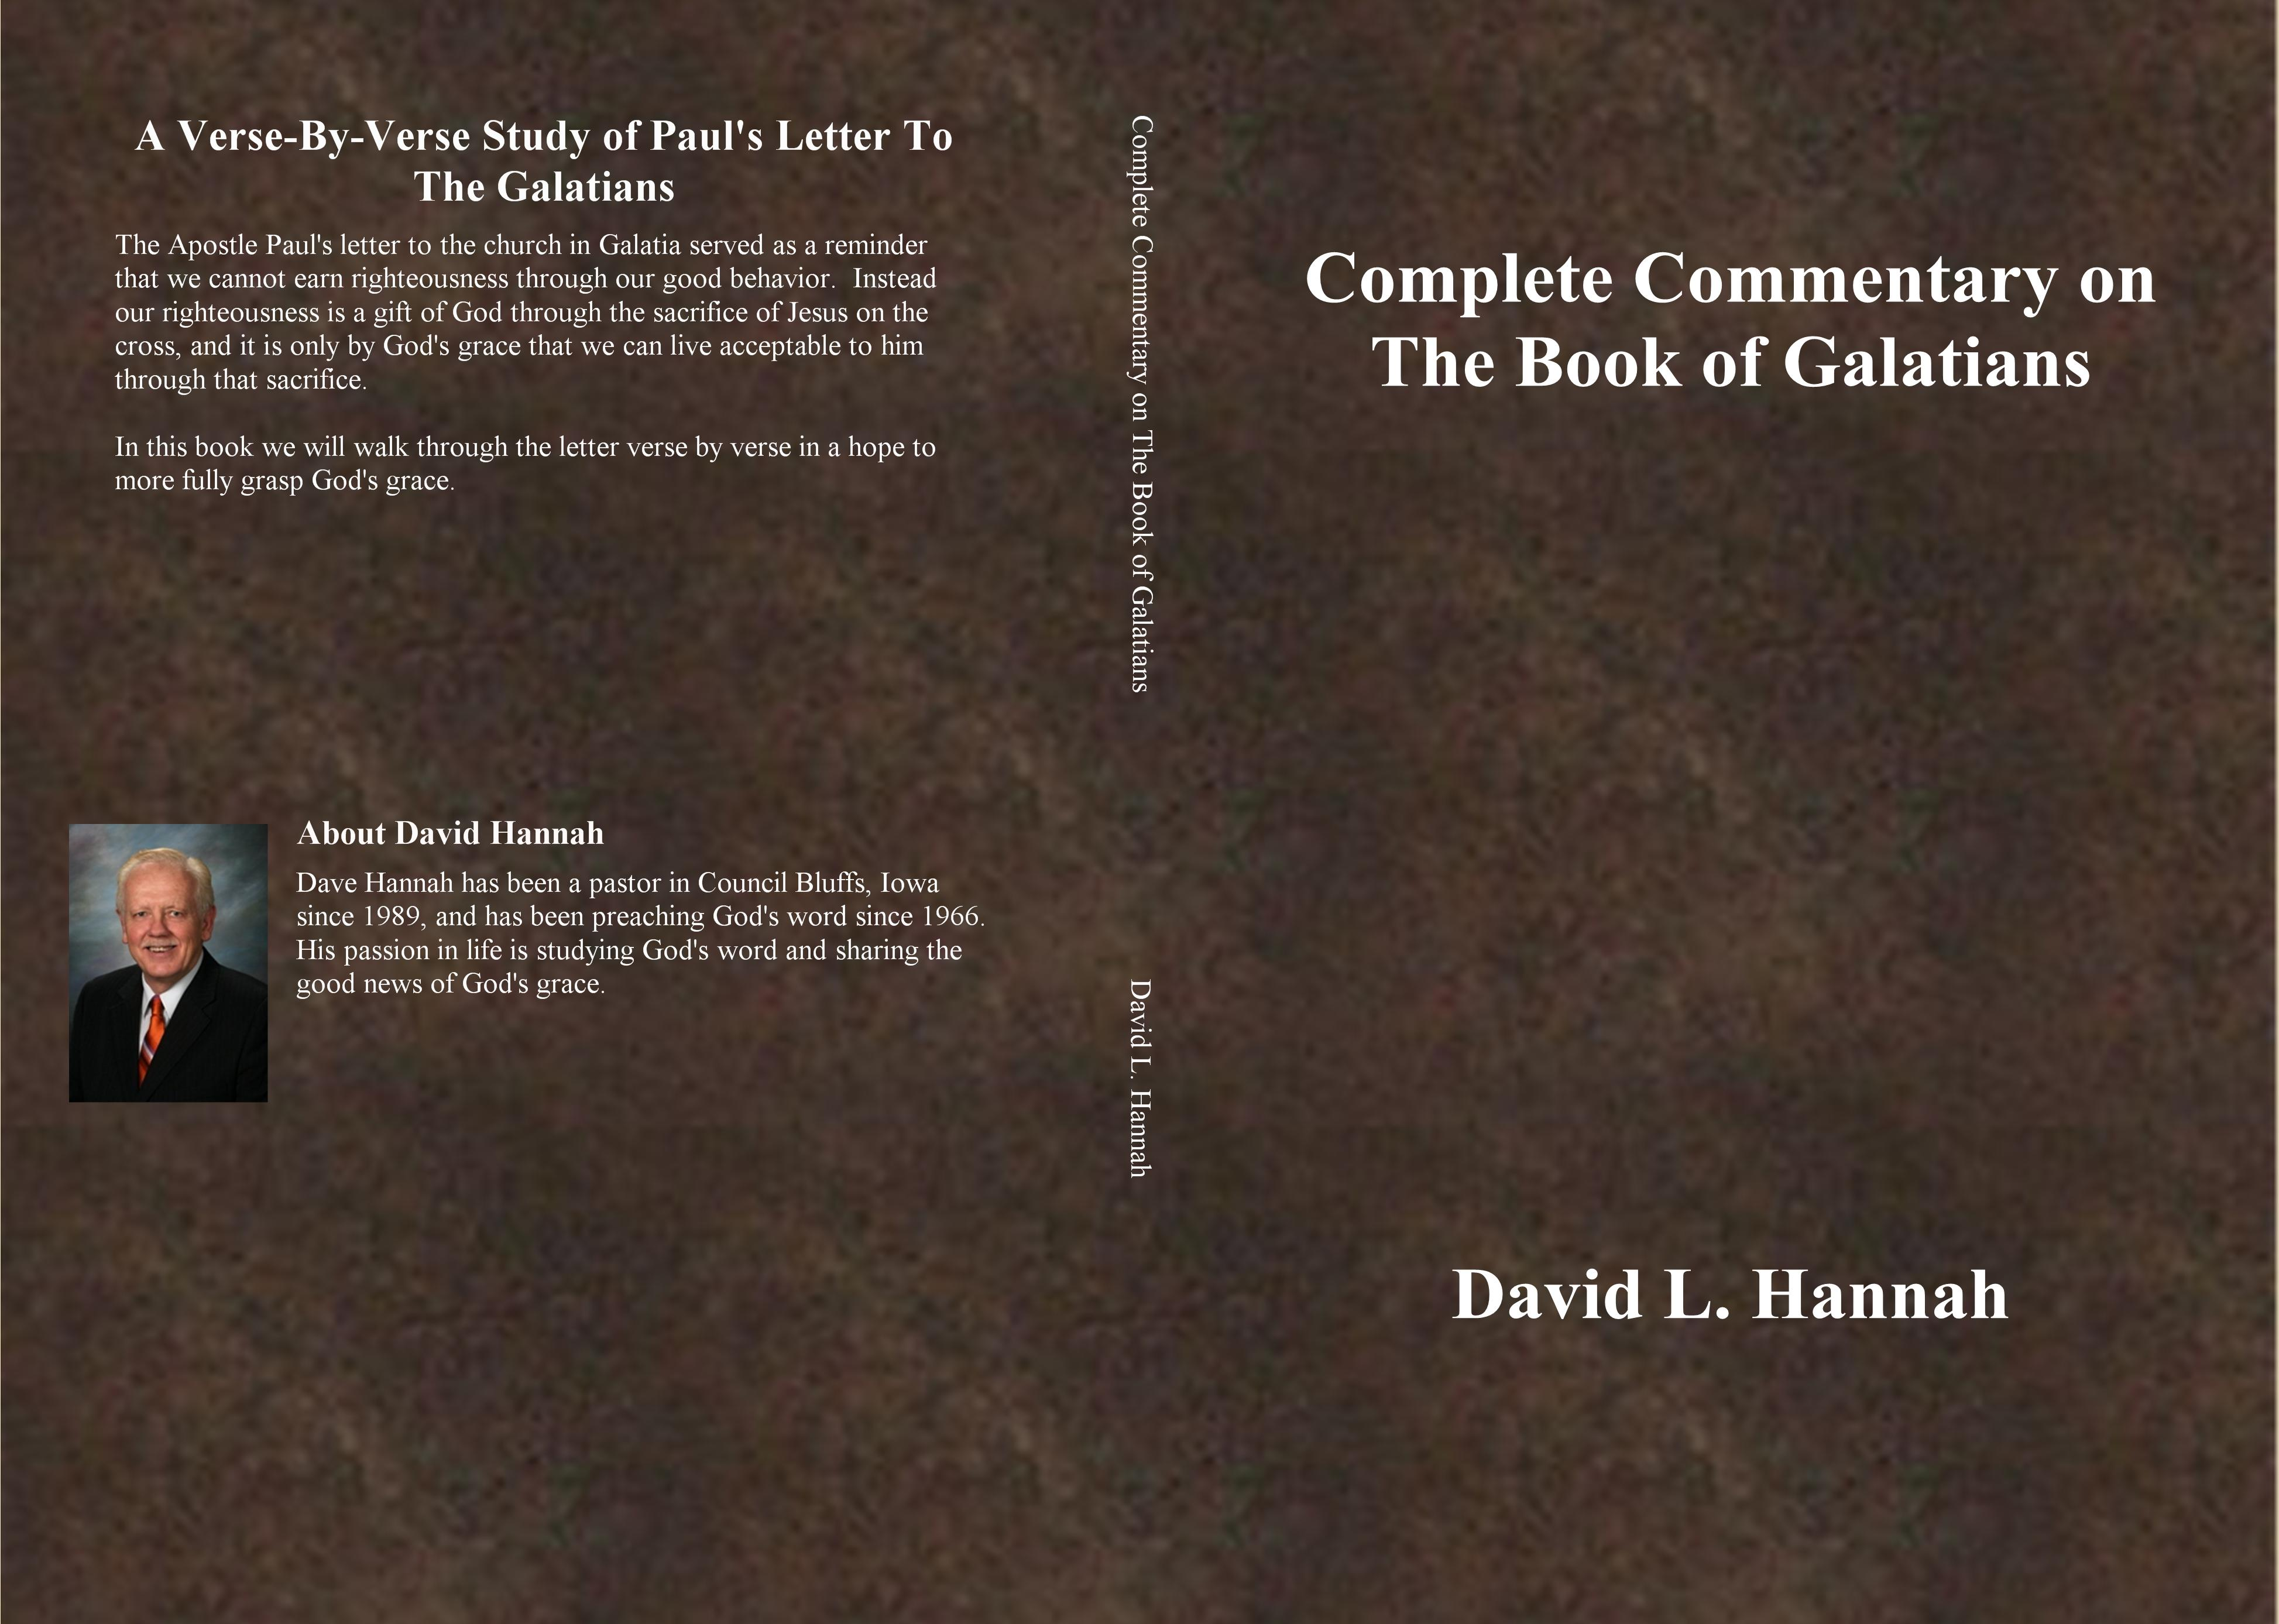 Complete Commentary on The Book of Galatians cover image